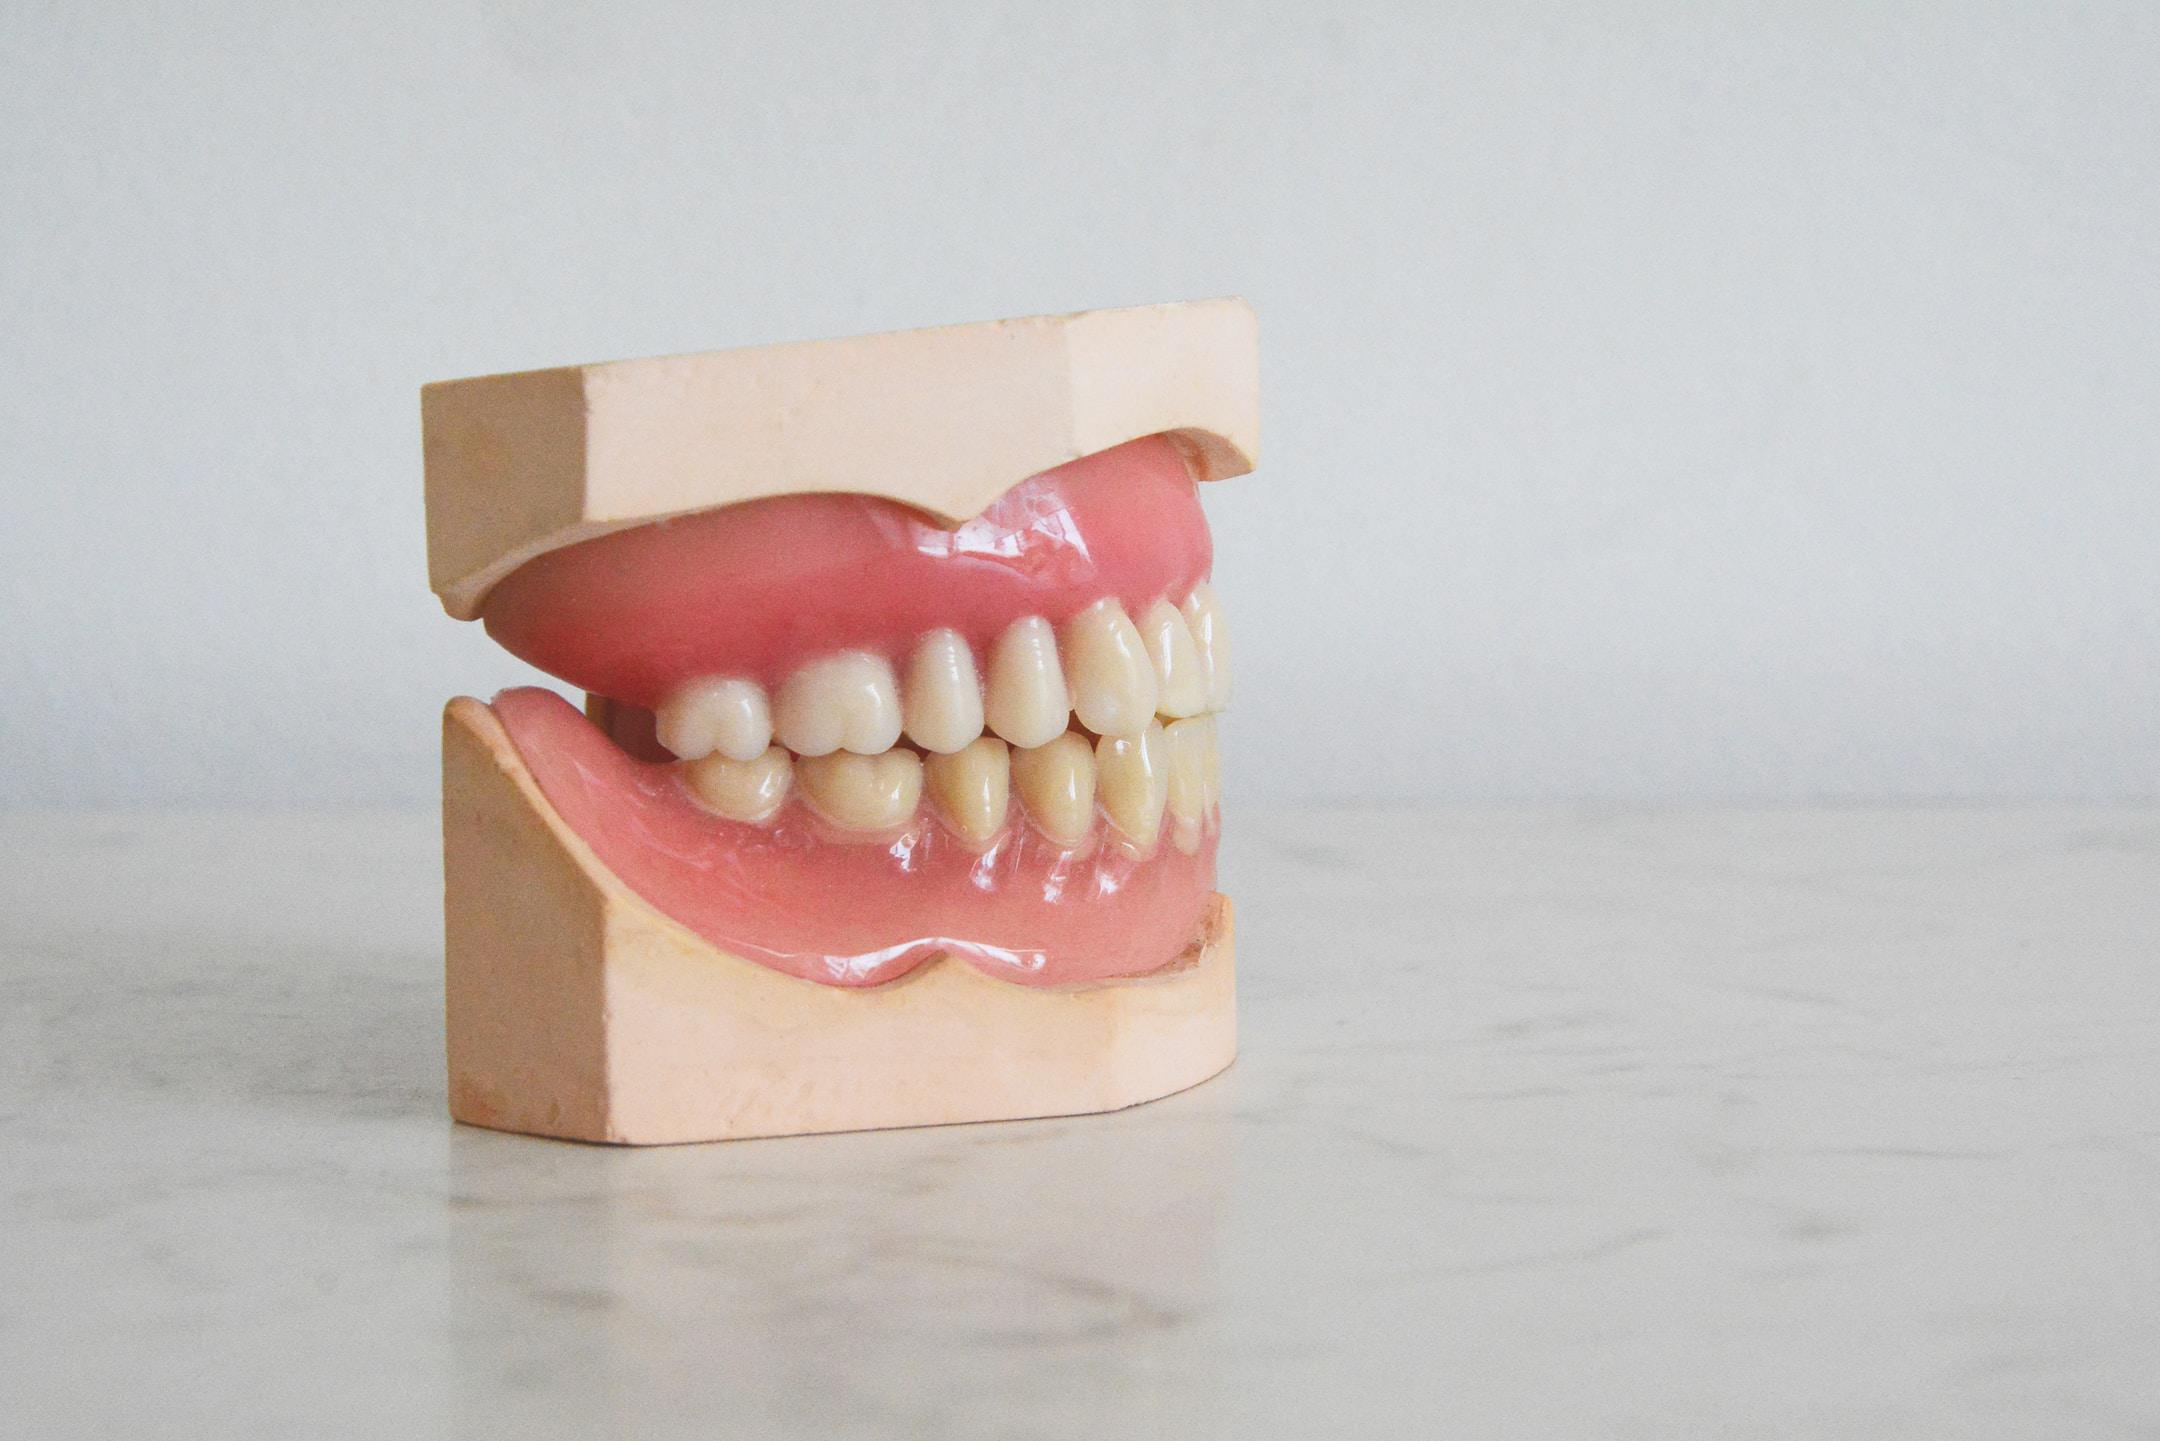 Dental prosthesis on a table, teeths are shown. Dental technicians use it.